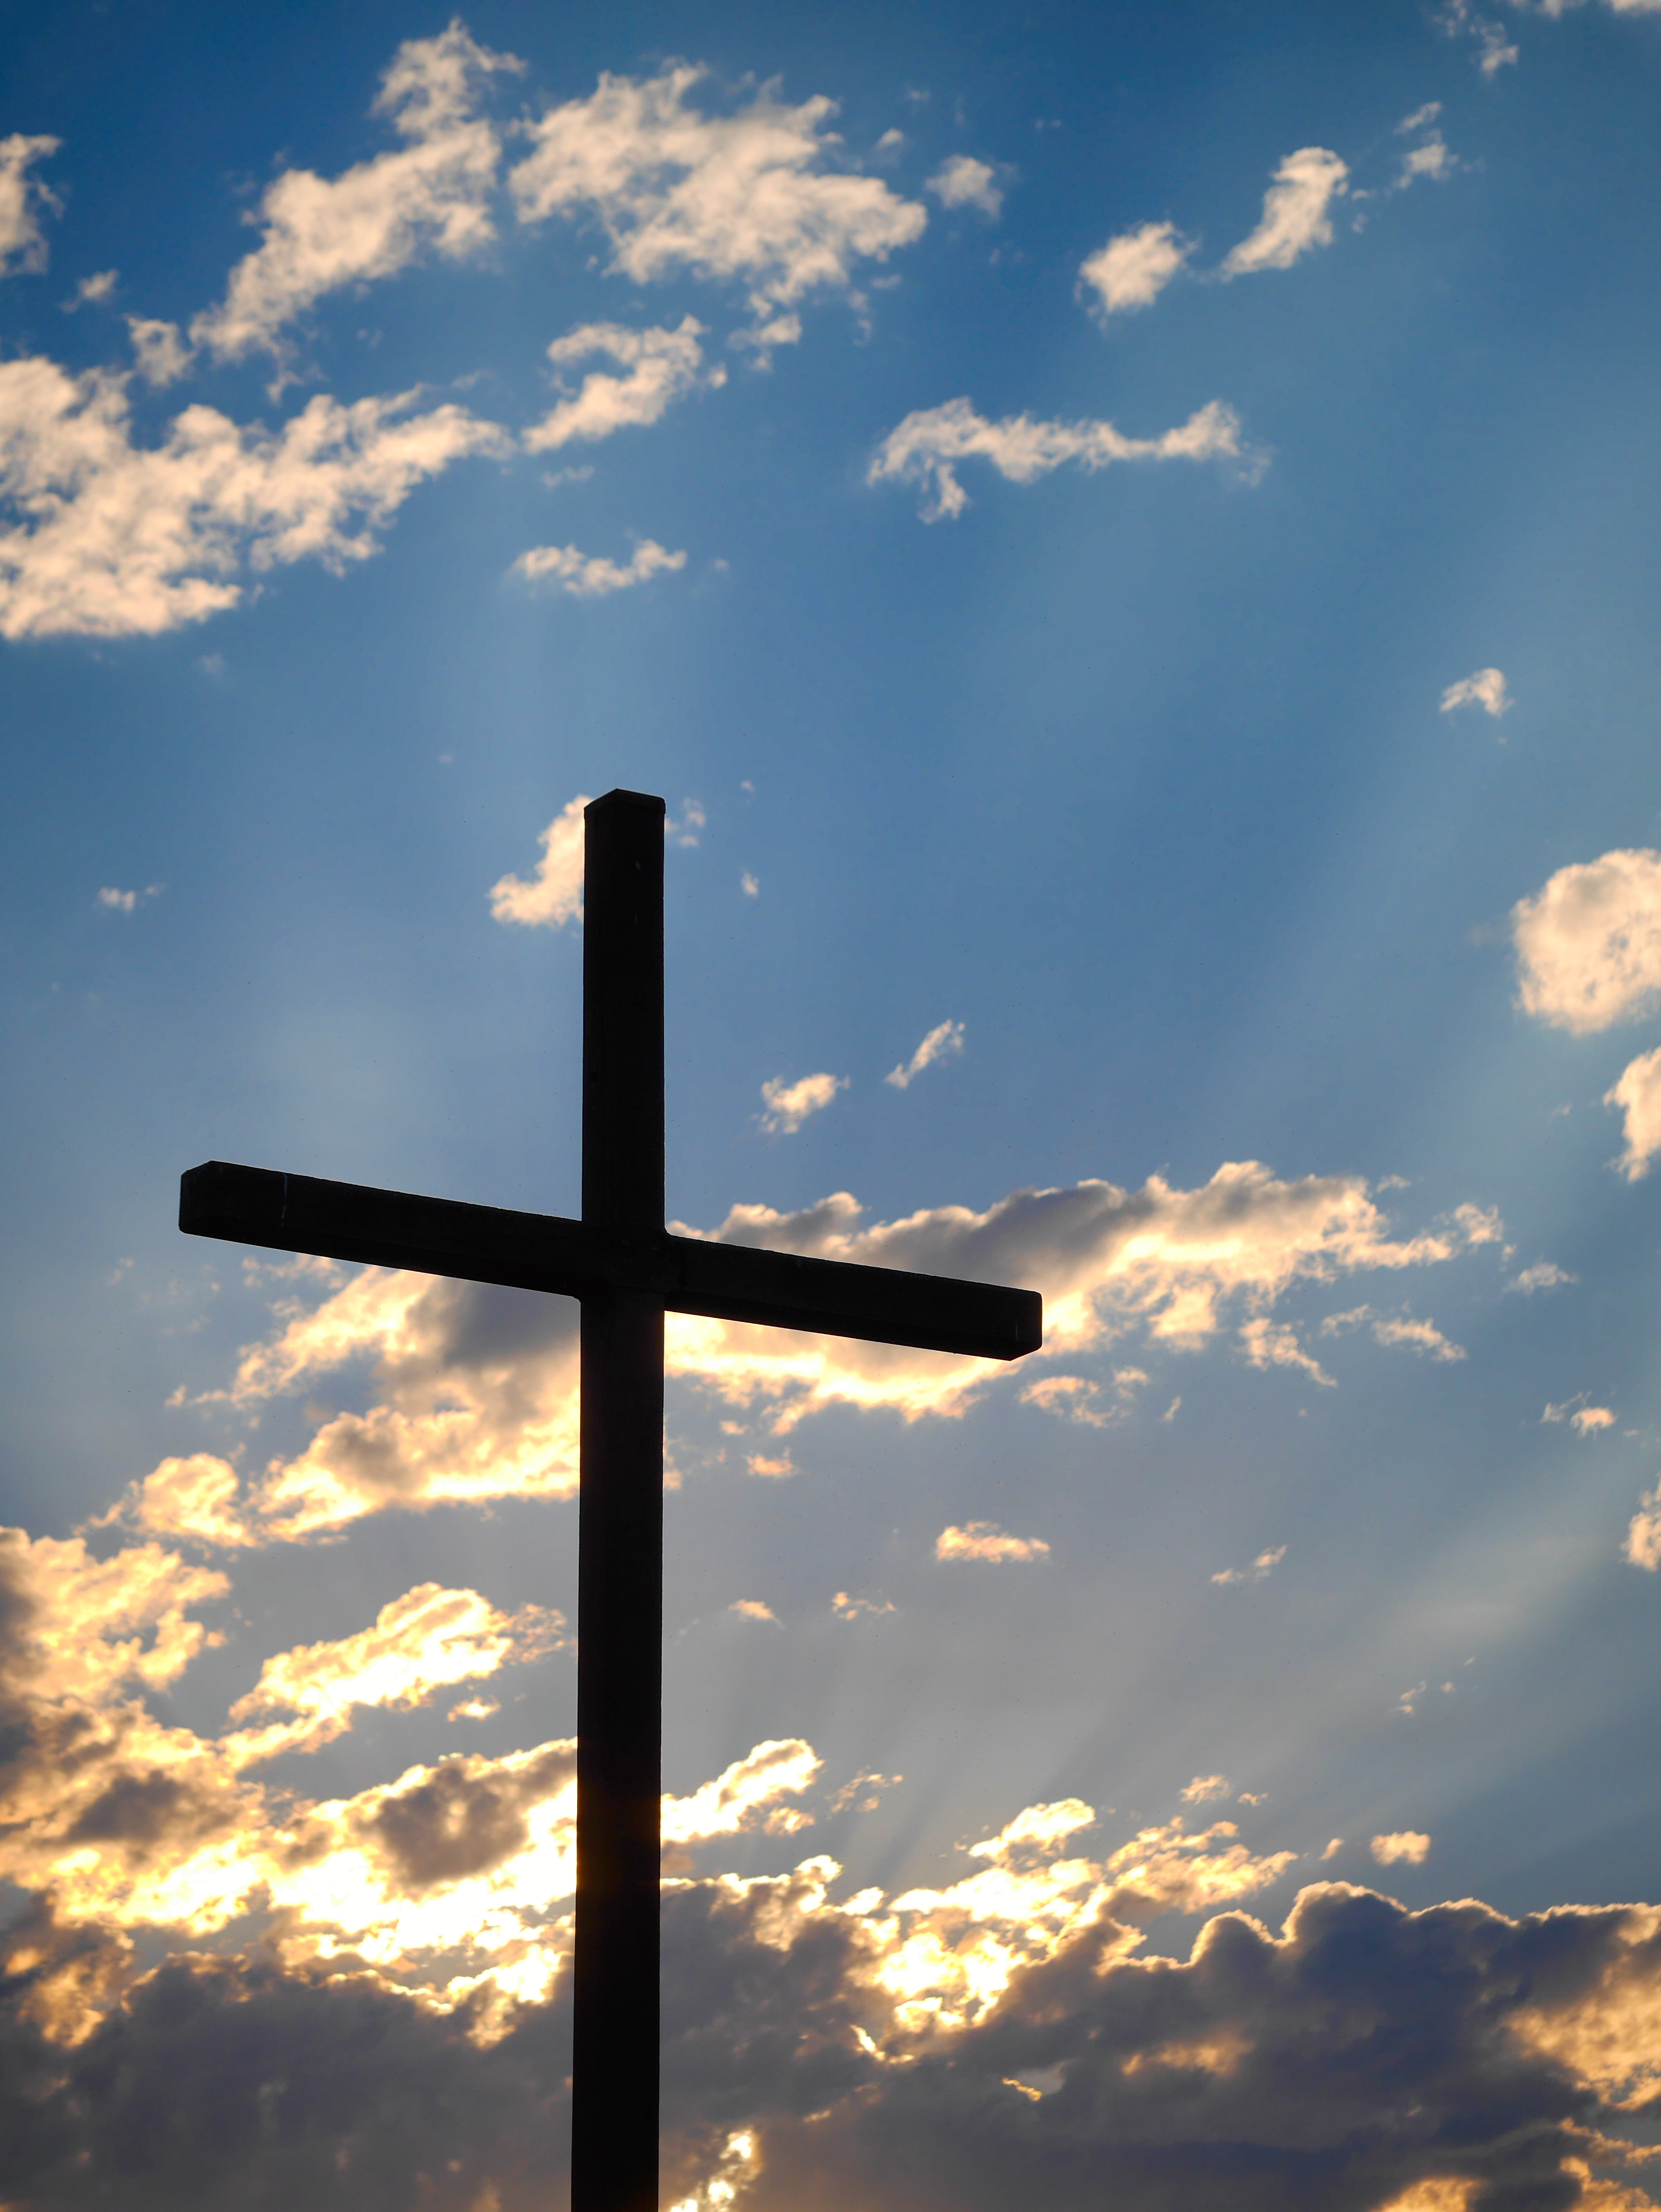 A large cross with a bright cloudy sky in the background.